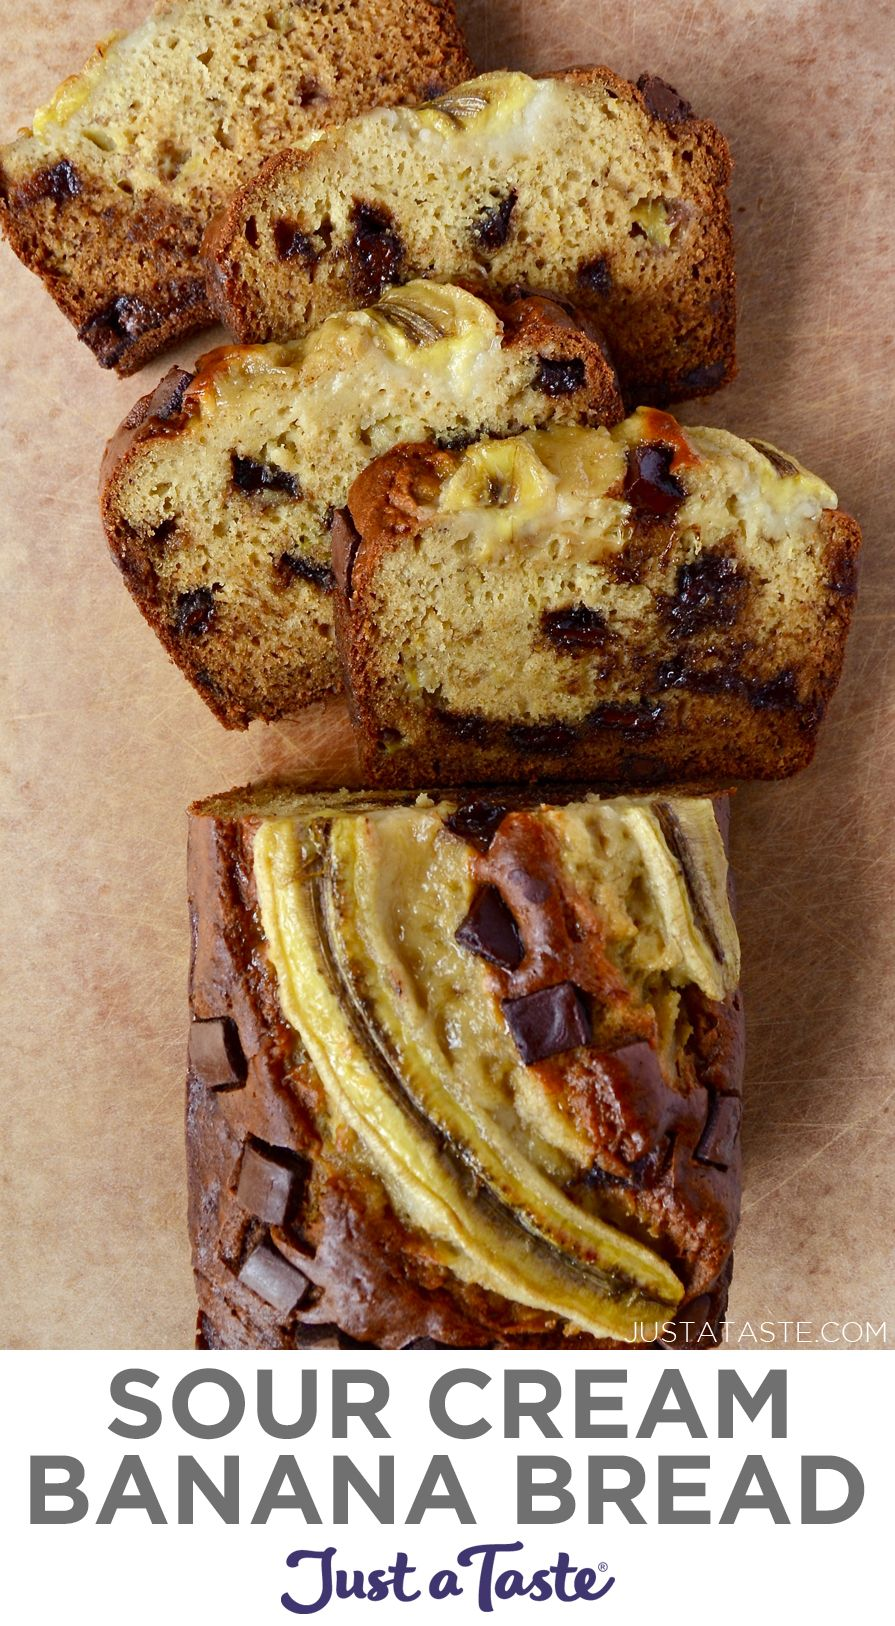 The Best Sour Cream Banana Bread Recipe In 2020 Sour Cream Banana Bread Banana Bread Recipes Easy Banana Bread Recipe